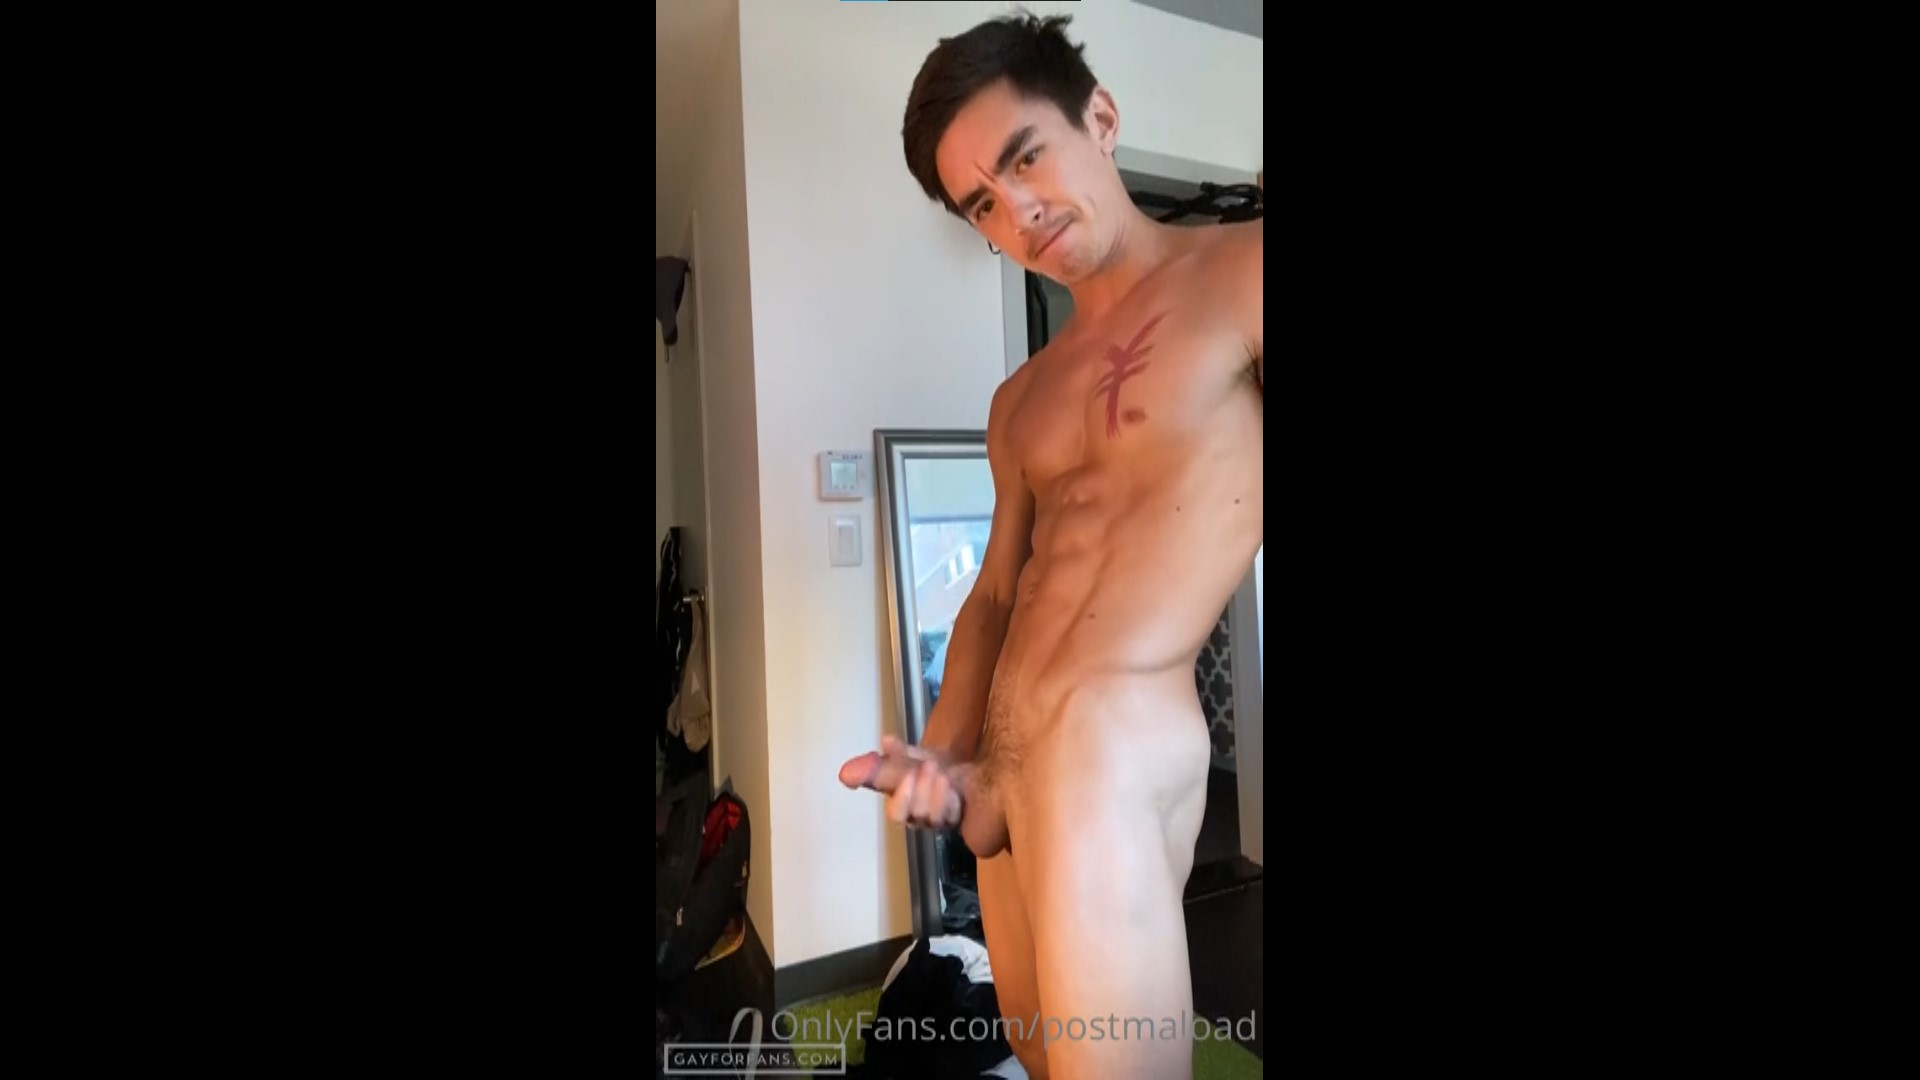 Shooting a load over my abs - Cody Seiya (postmaload)